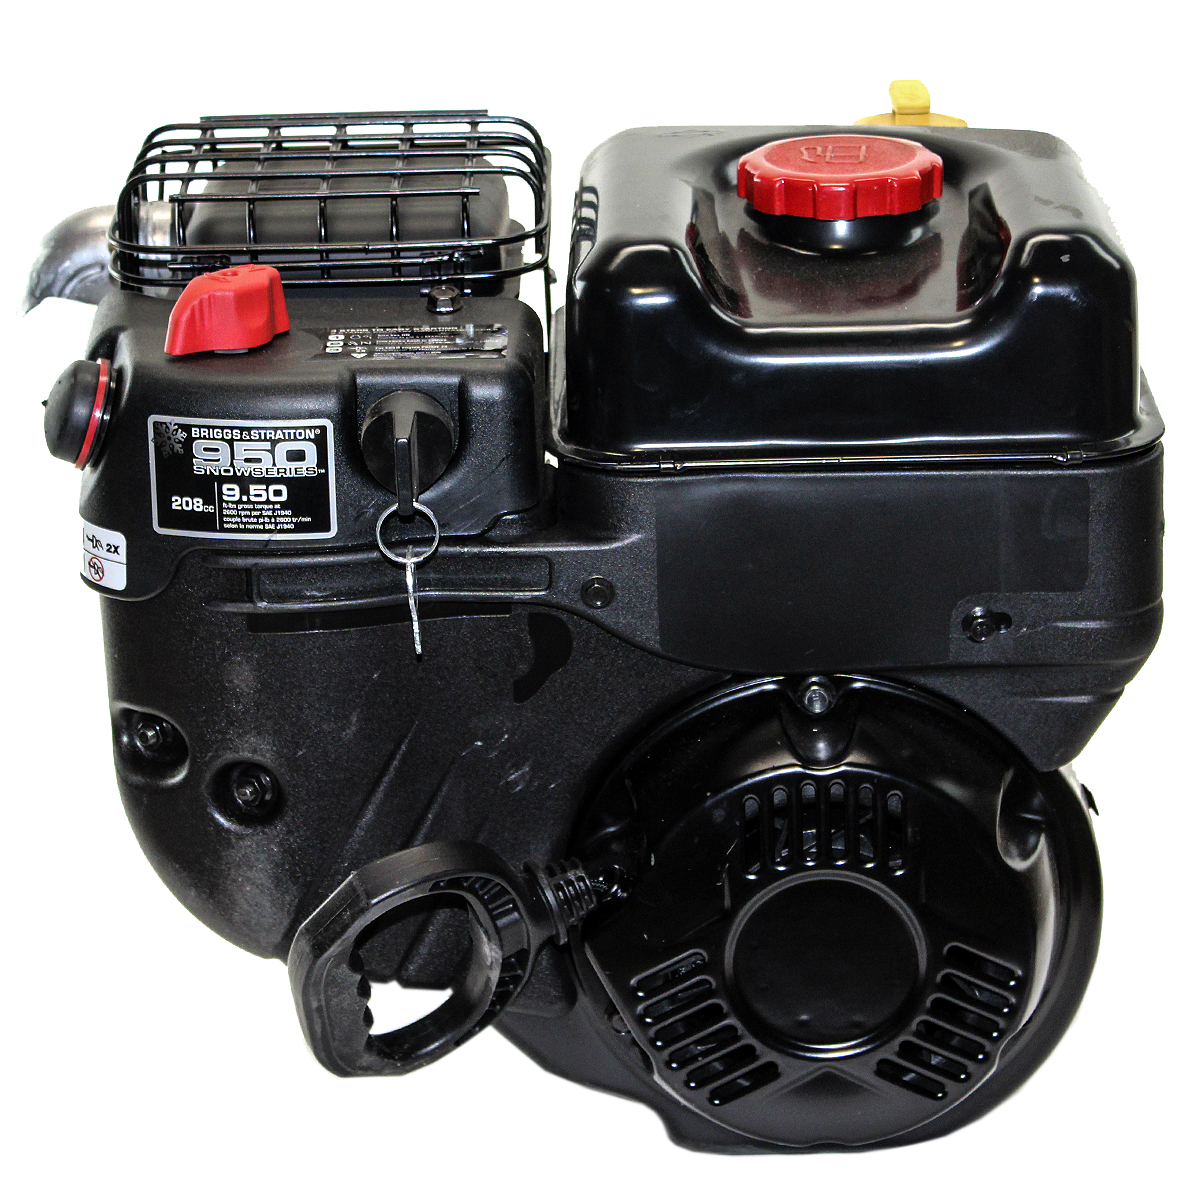 950 Snow Series, Horizontal 7/8 x 2-25/32 Shaft Fuel Tank, Muffler, Recoil Start,  Fixed Speed Throttle, Briggs & Stratton Engine